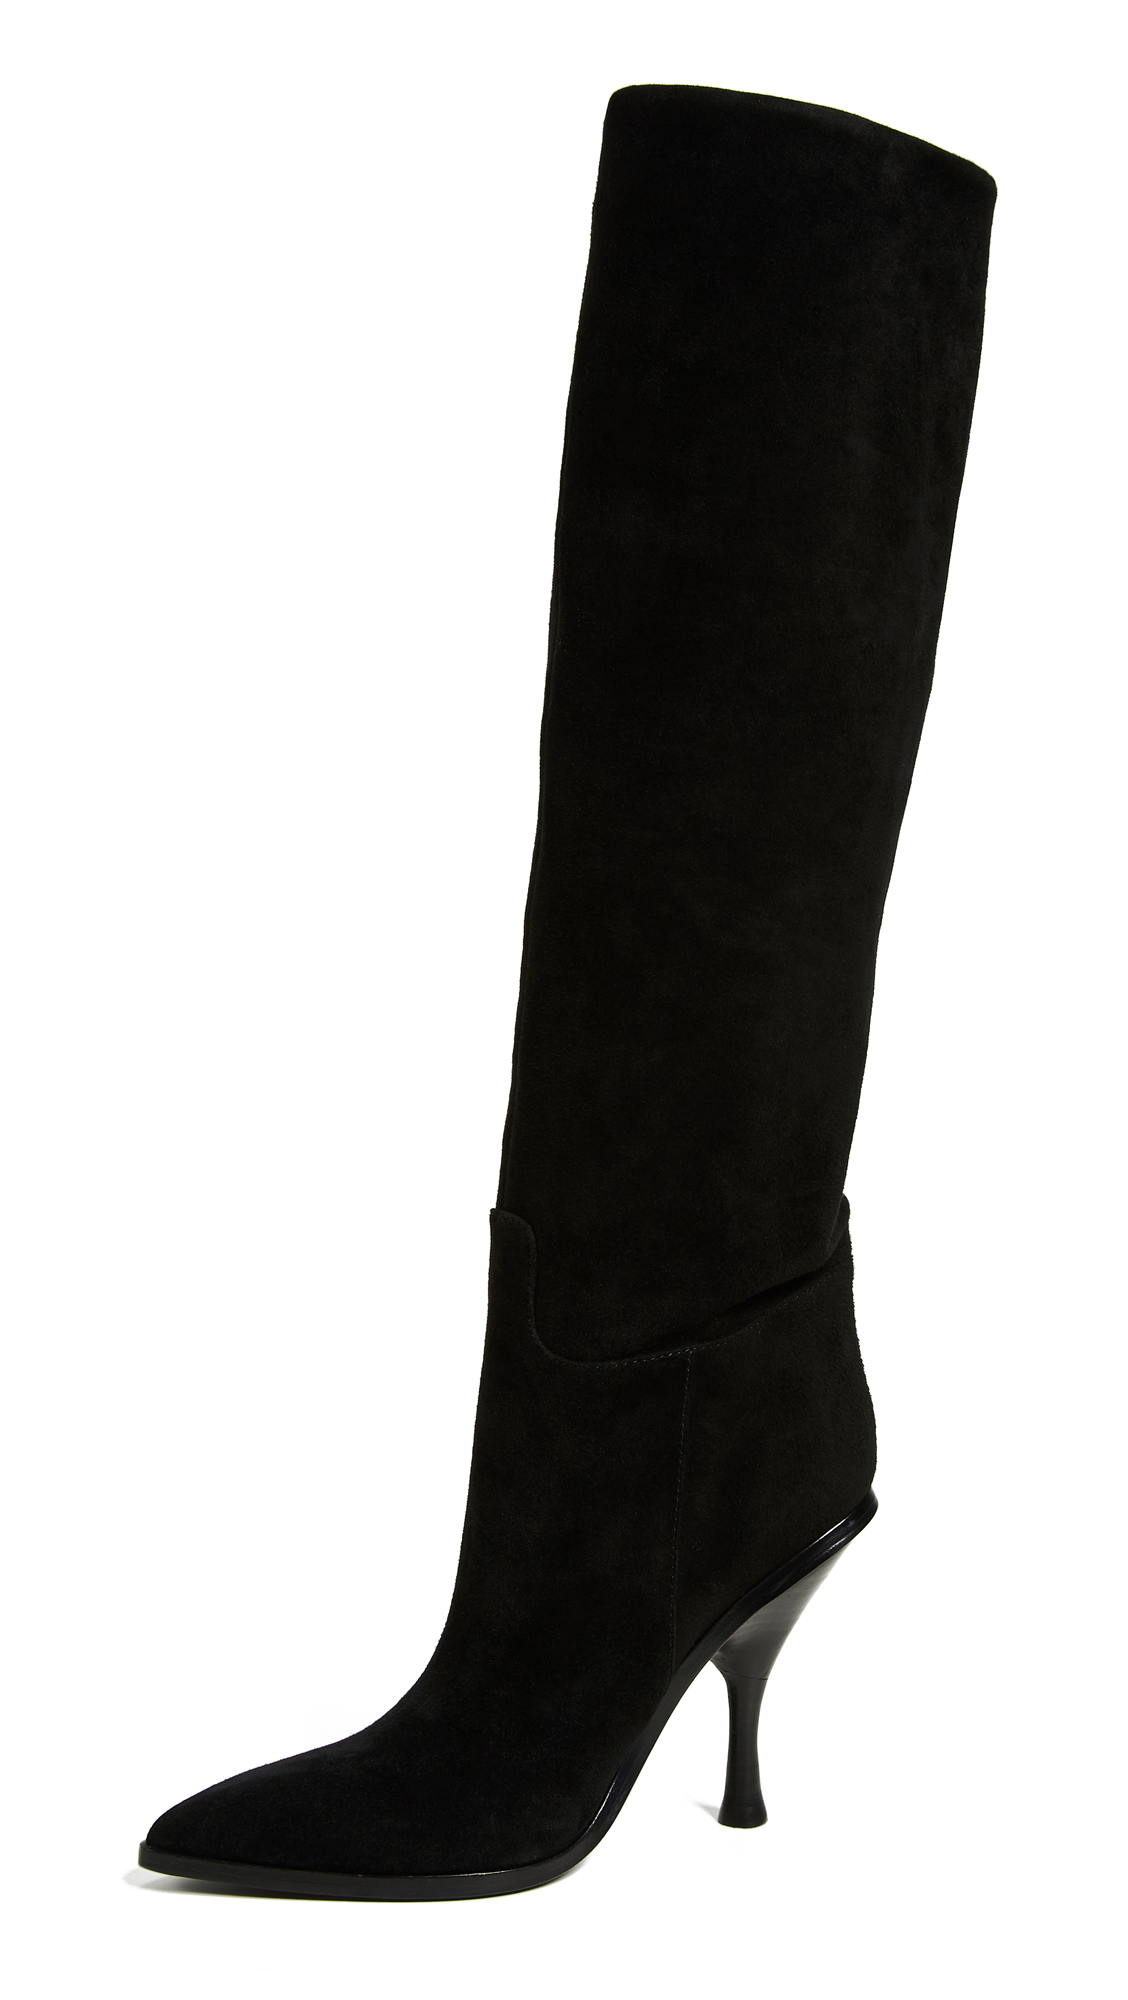 Sigerson Morrison Halie Pointed Toe Boots - Black